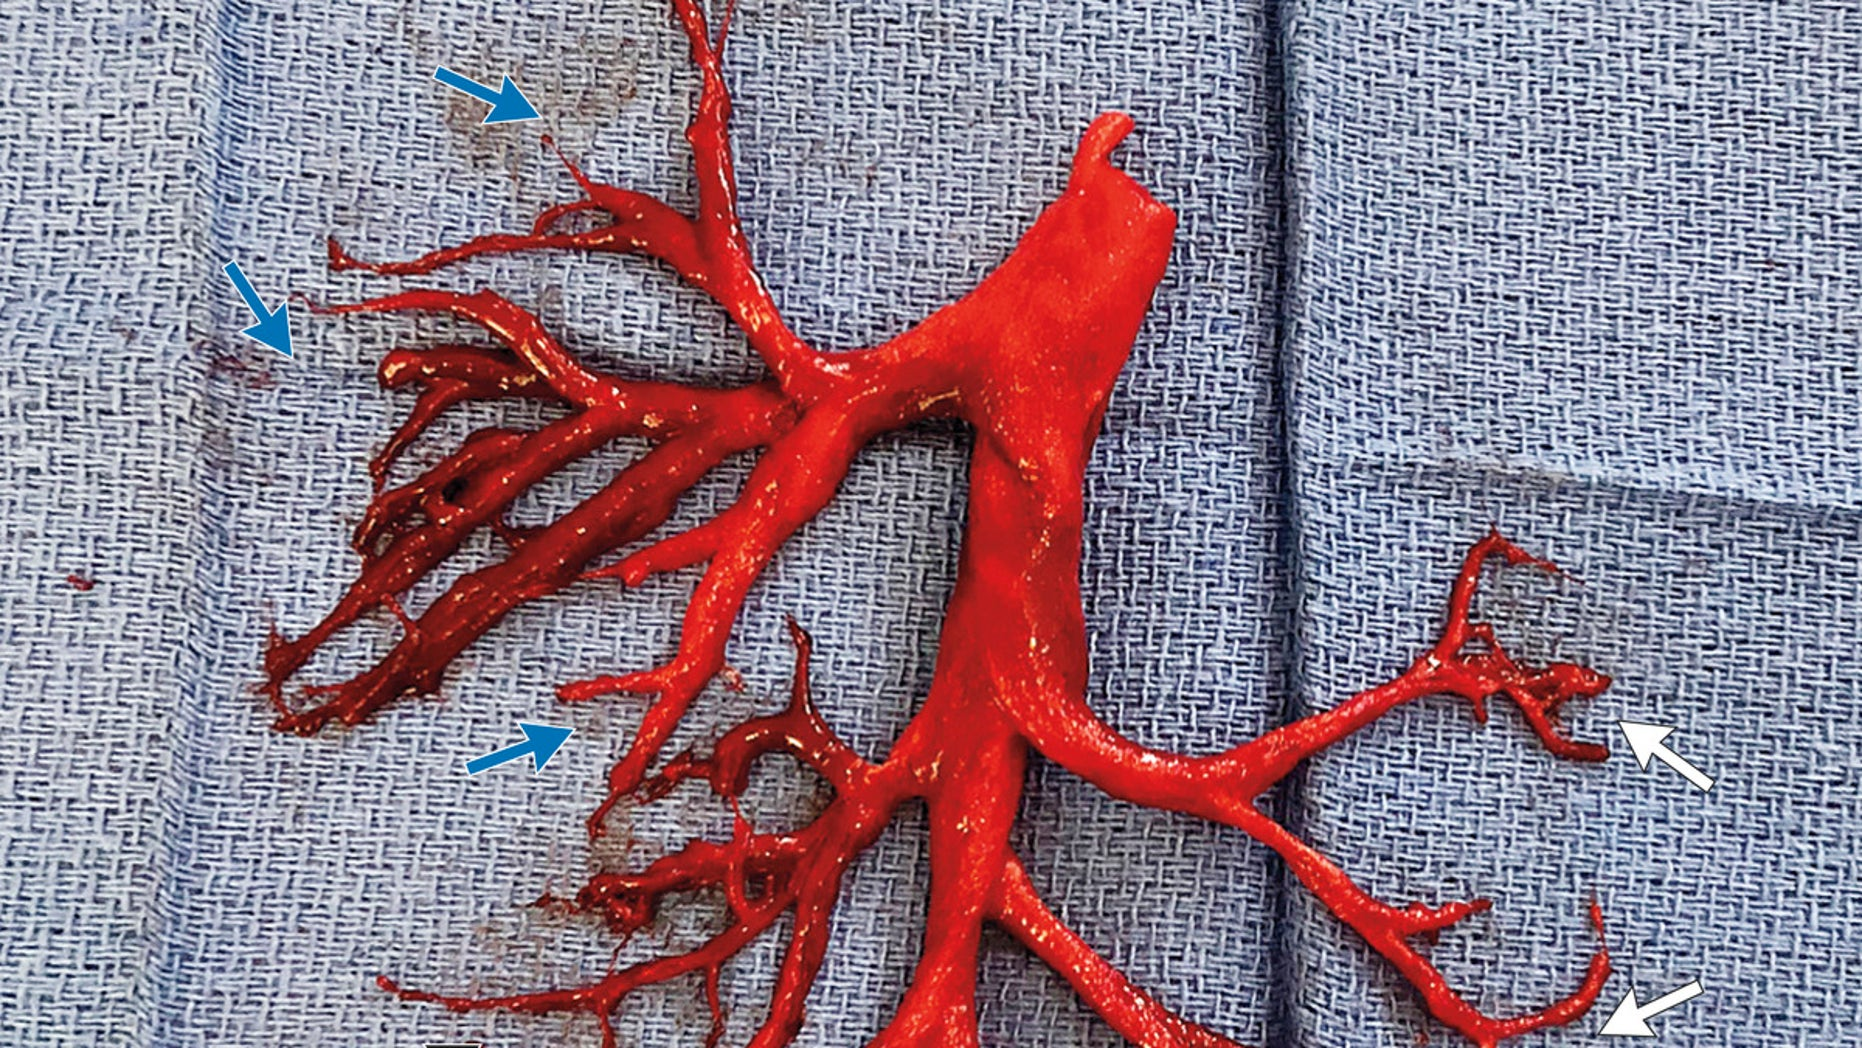 Man coughs up blood clot shaped like lung's bronchial tree